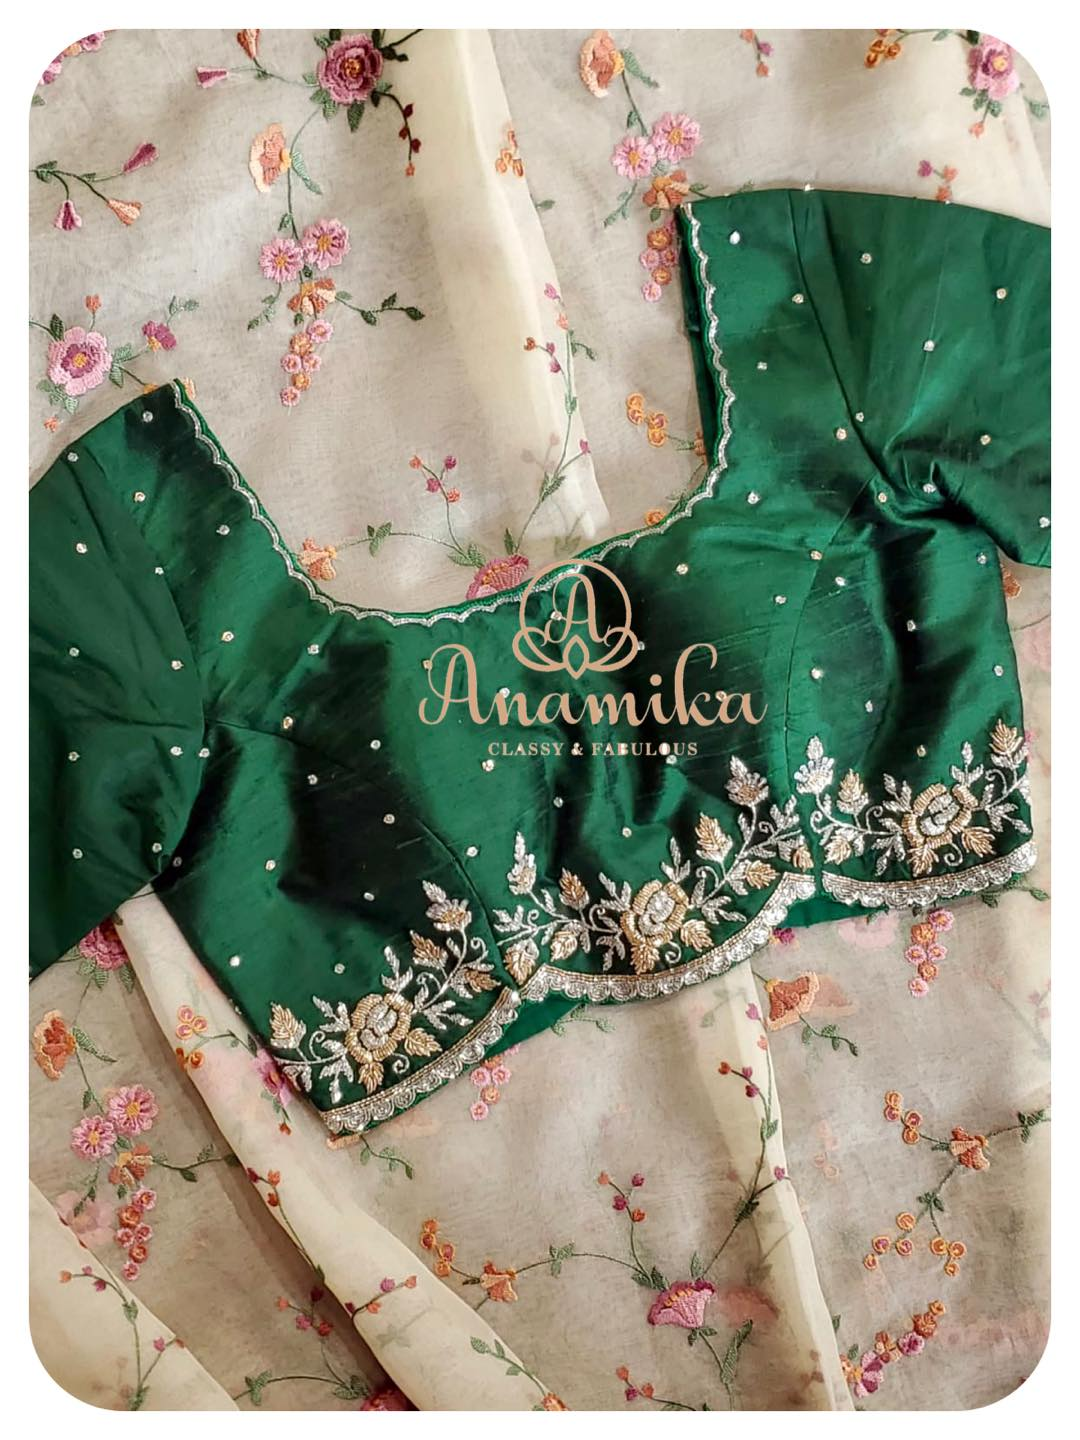 Stunning pearl white color floral saree and bottle green color blouse with hand embroidery work. Saree with floral hand embroidery work.   2021-03-26